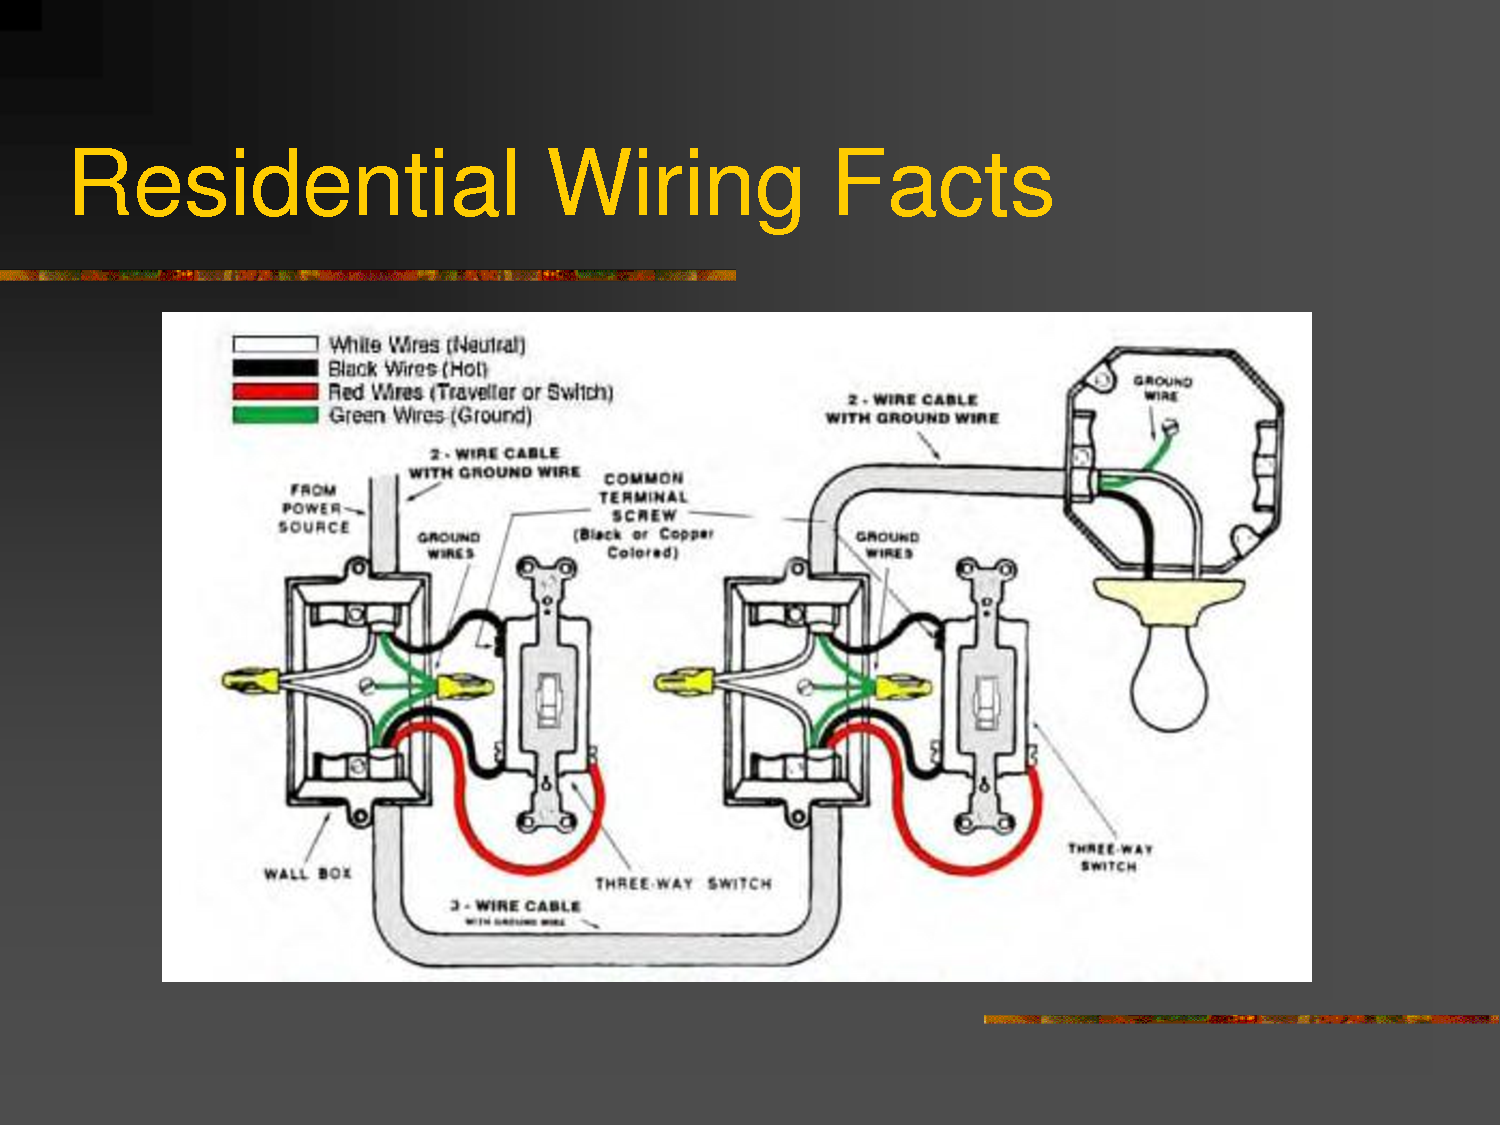 4 best images of residential wiring diagrams house electrical rh pinterest com home electrical light switch wiring home electrical light switch wiring